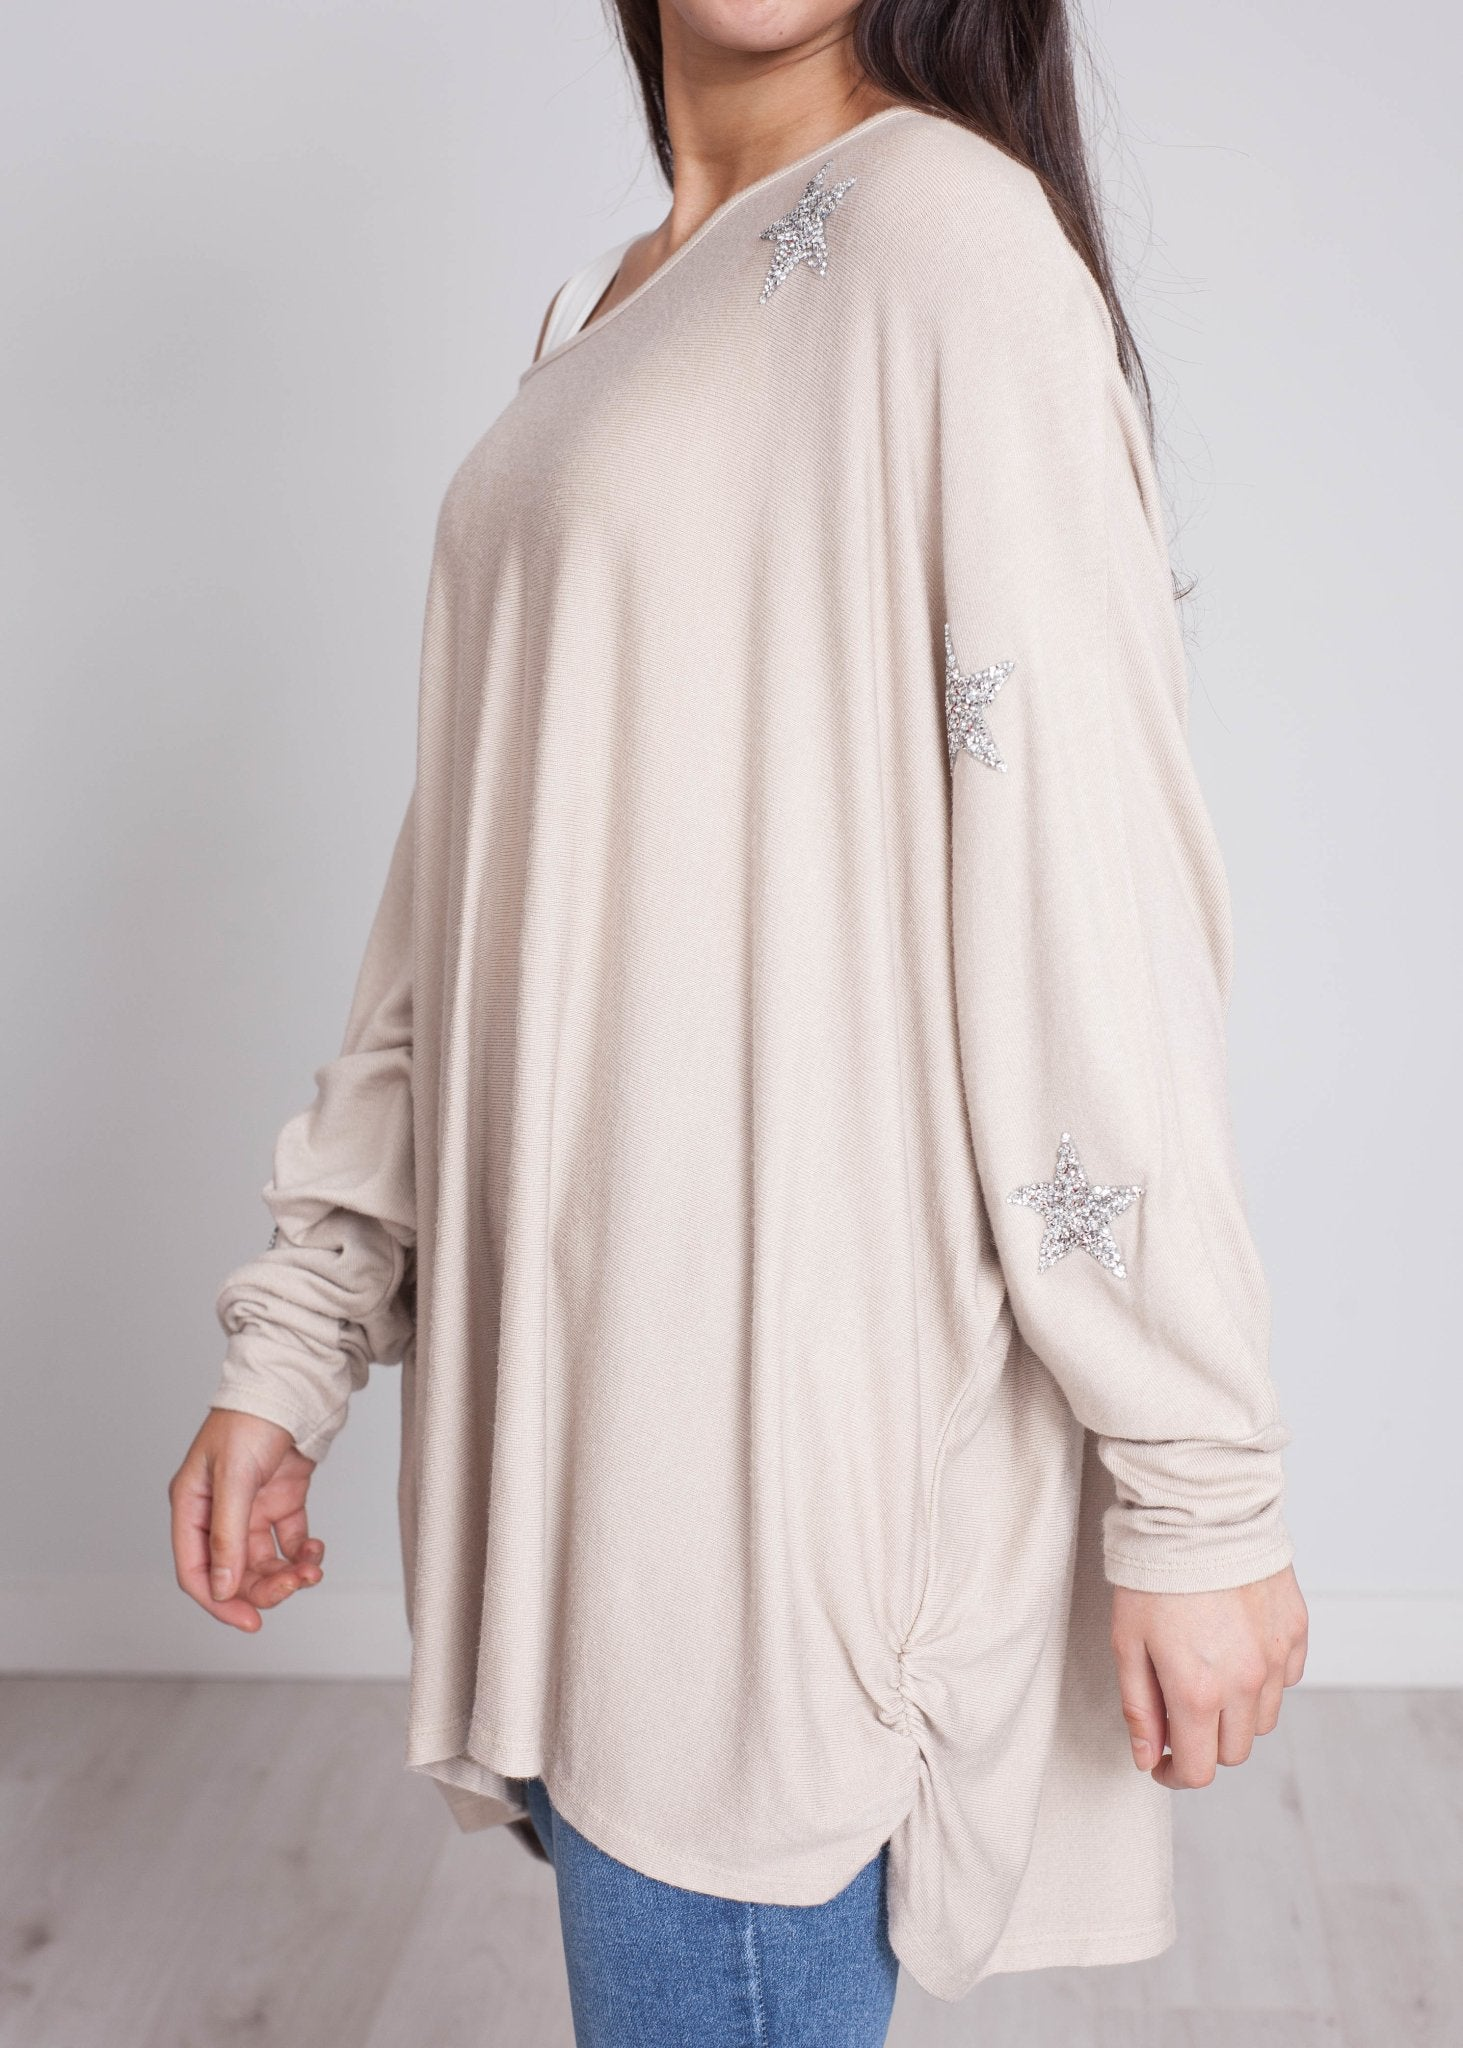 Priya Embellished Knit In Stone - The Walk in Wardrobe